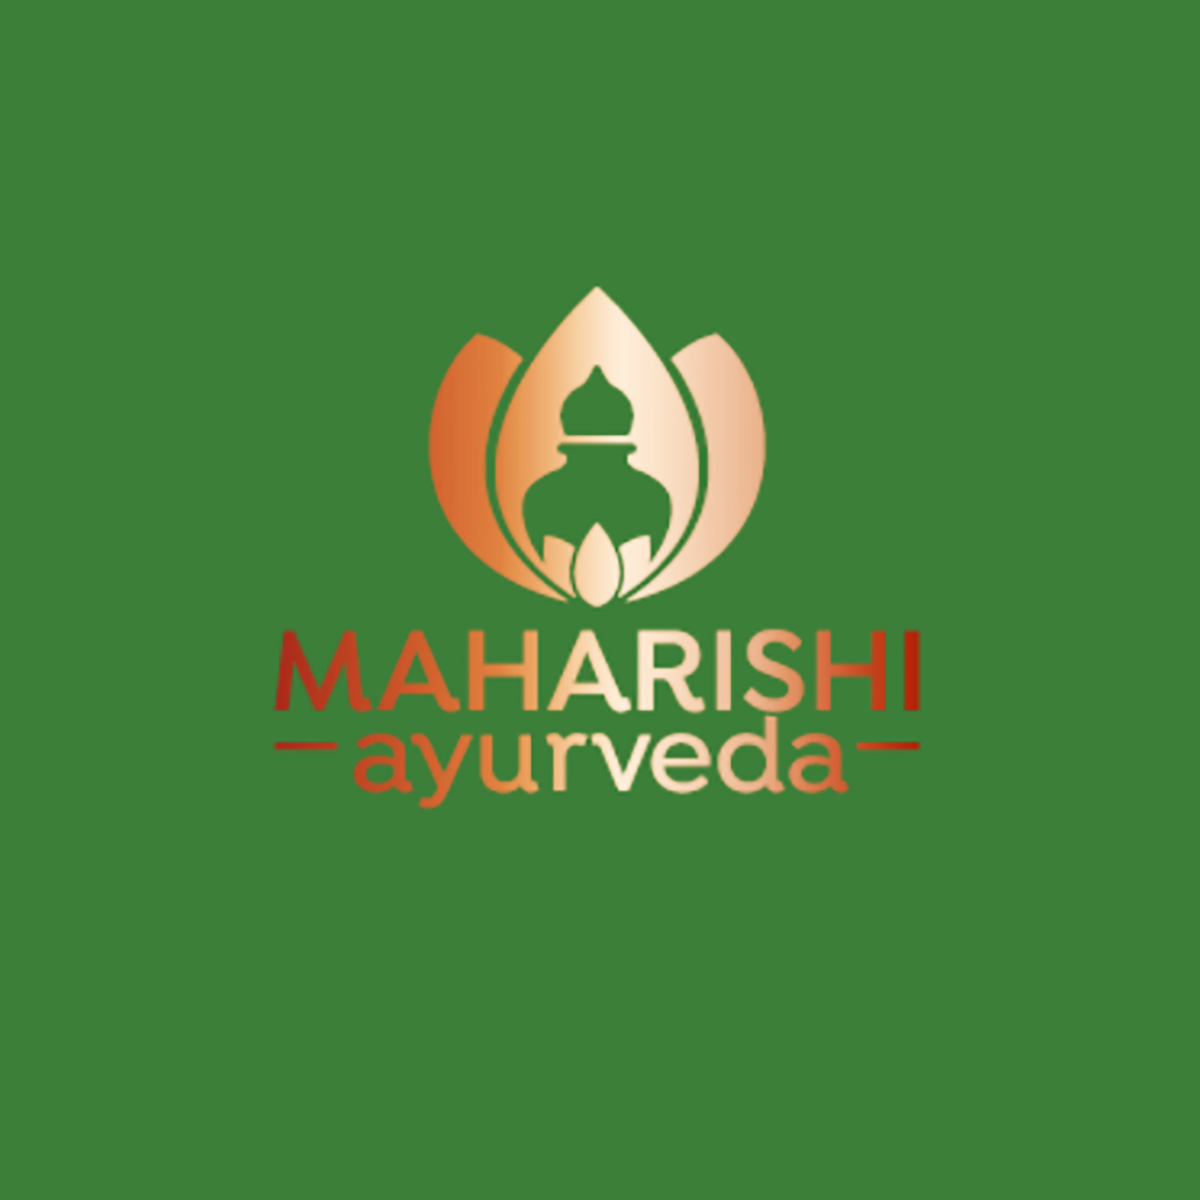 Maharashi ayurveda